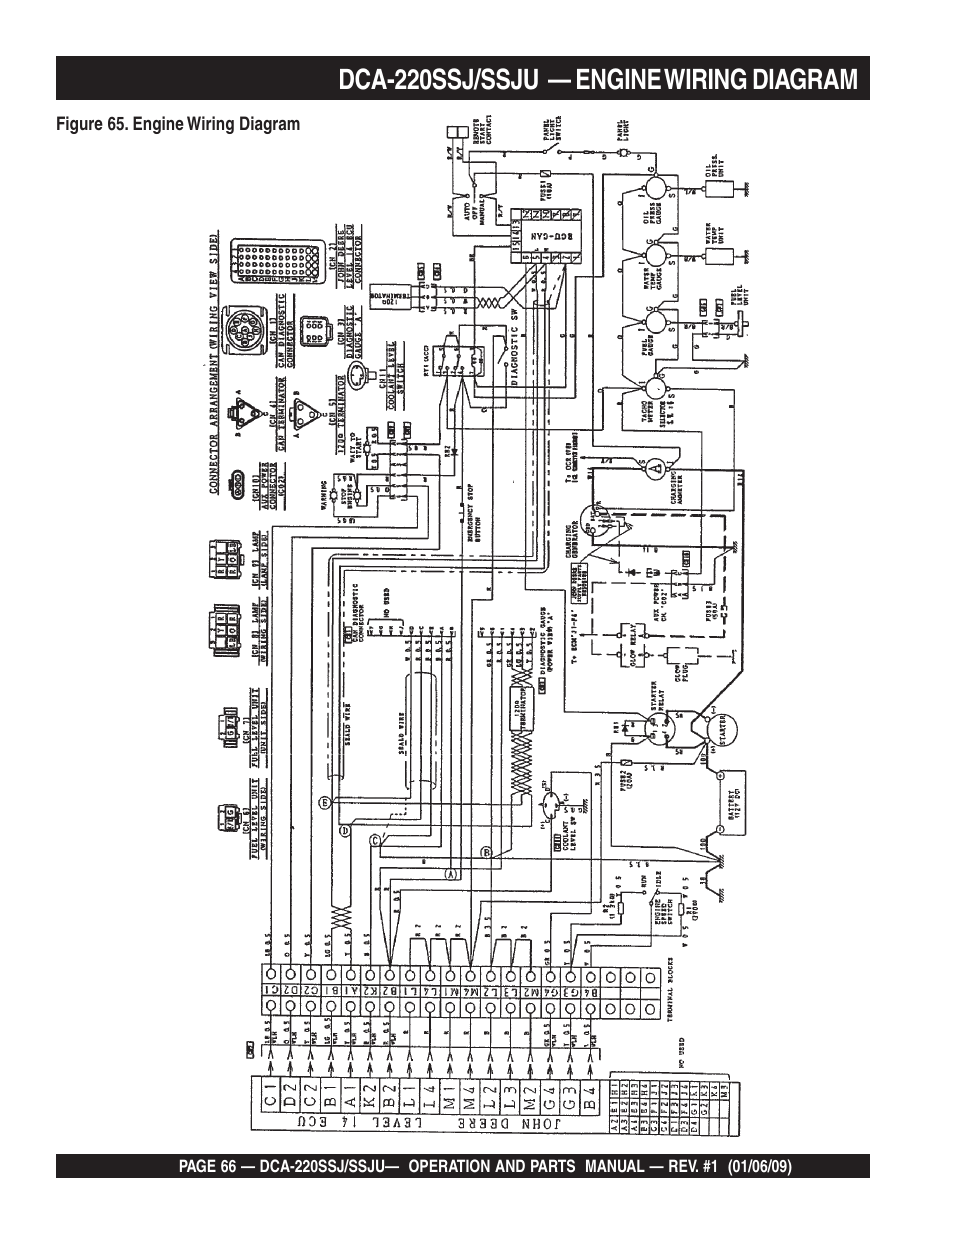 Kohler 5e Marine Engine Wiring Harness Diagram Free Ignition Switch Generator Parts Electrical 23 Hp